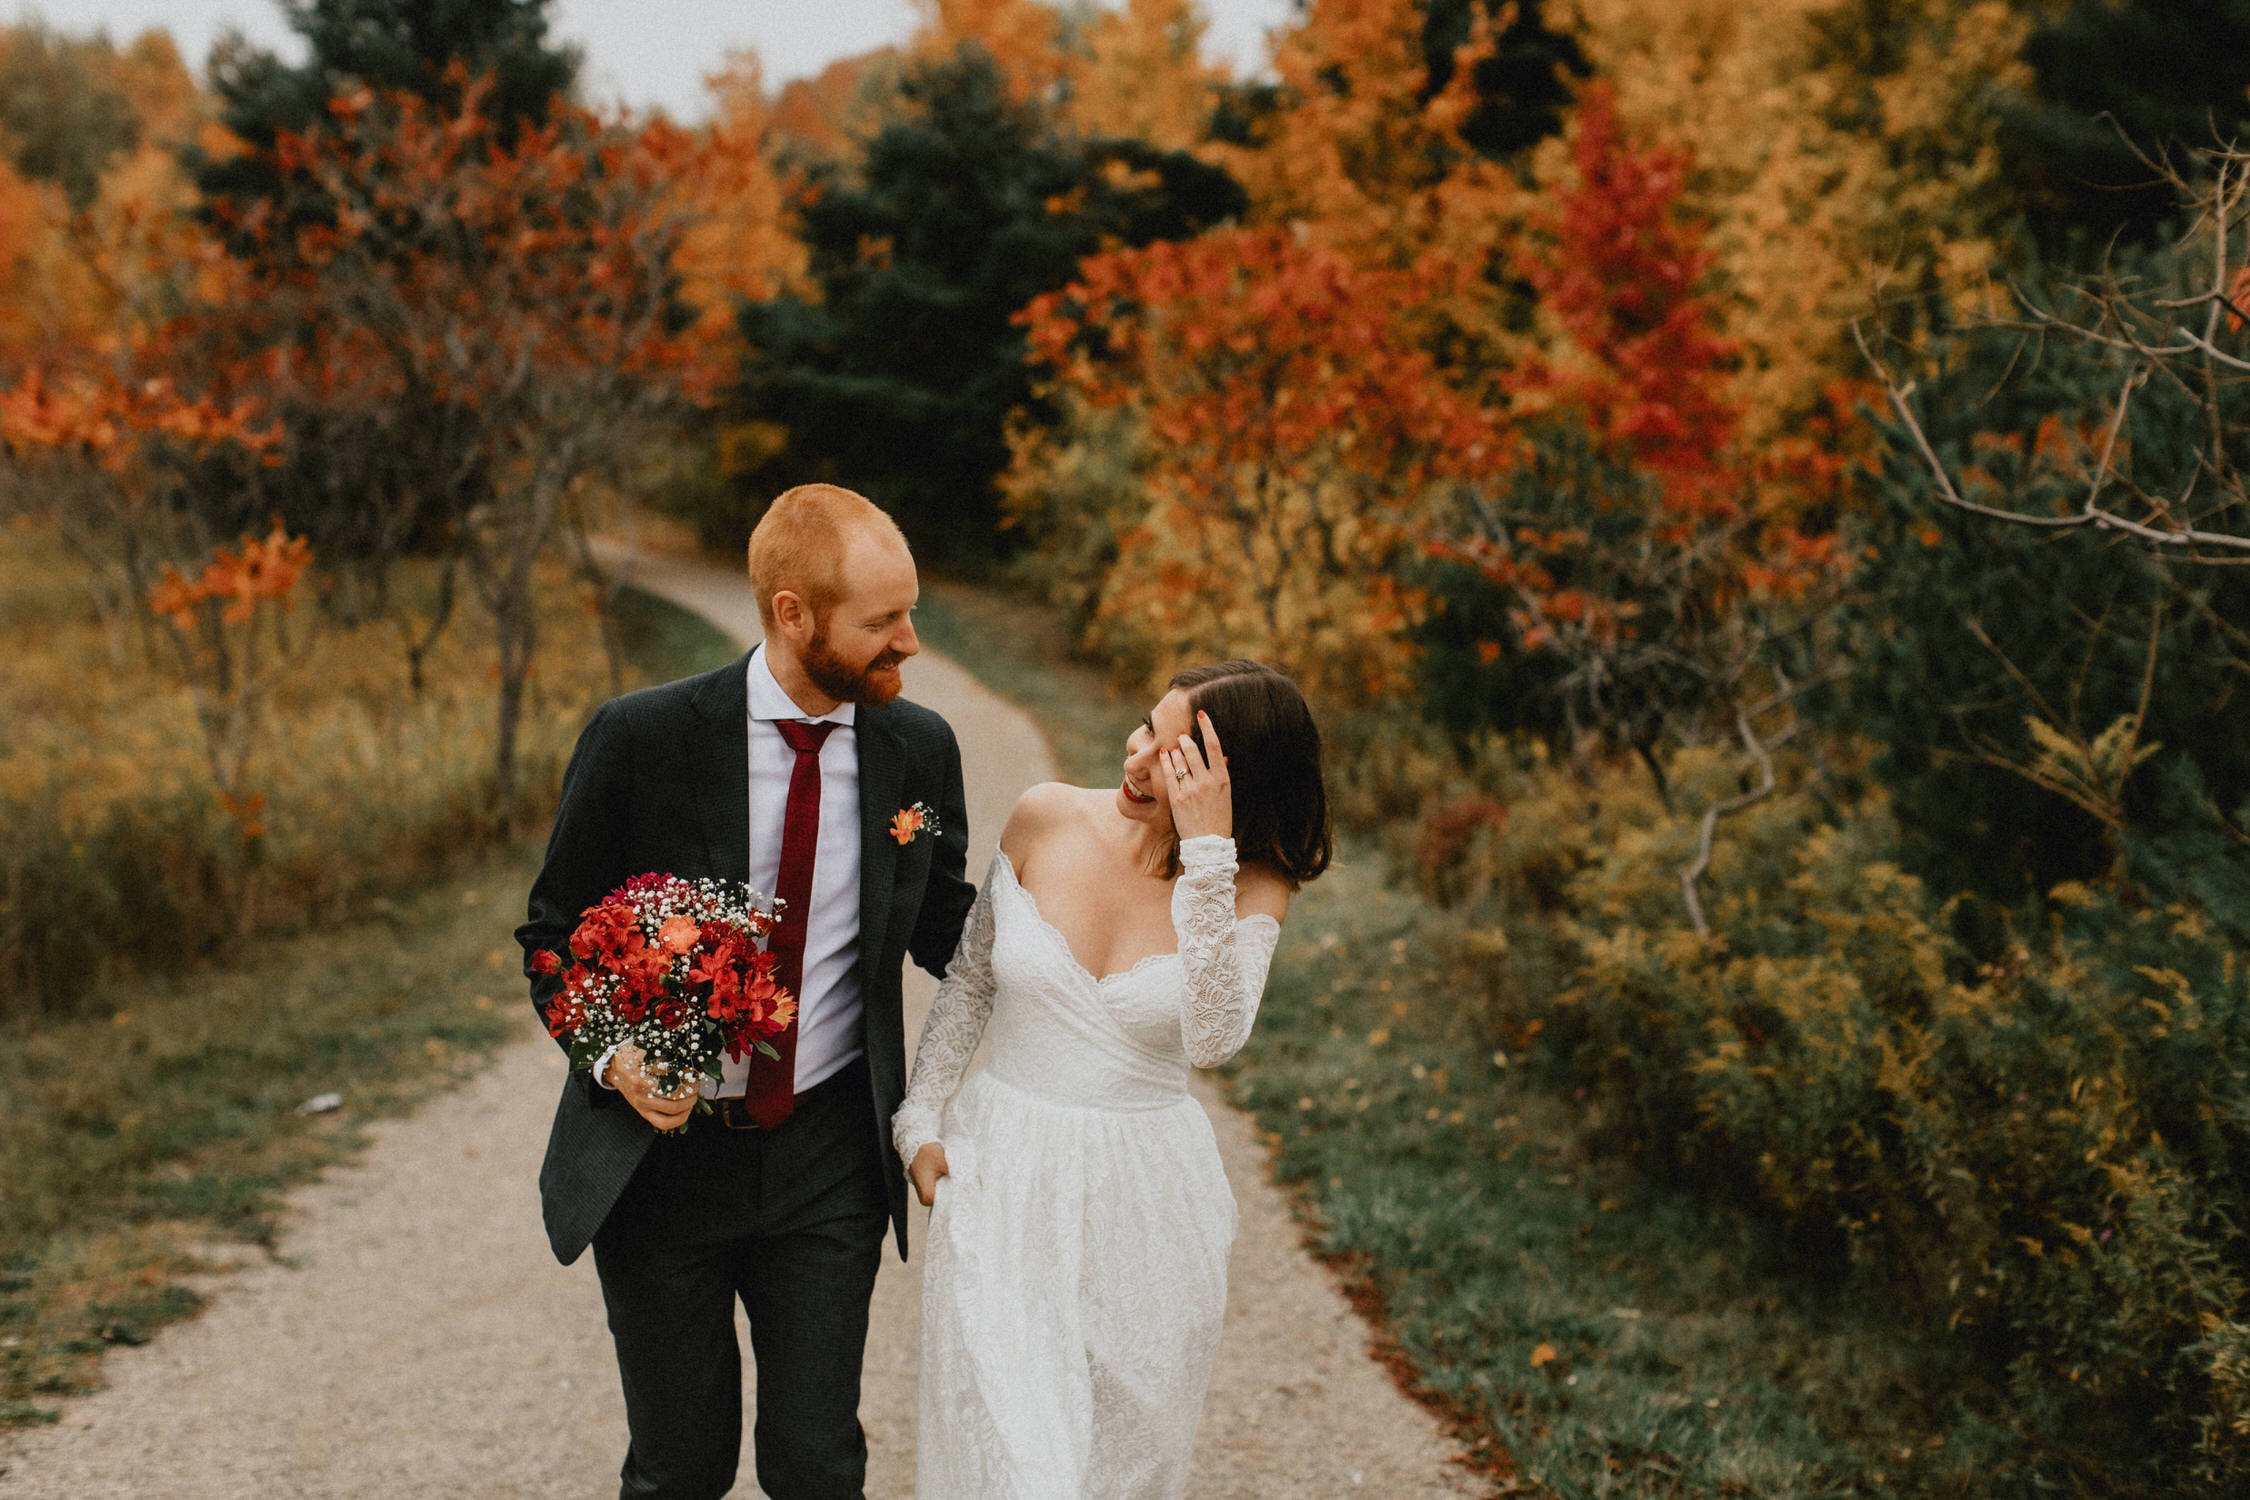 Bride and groom walk through park in fall - Huron Natural Area Micro Wedding Kitchener, Ontario